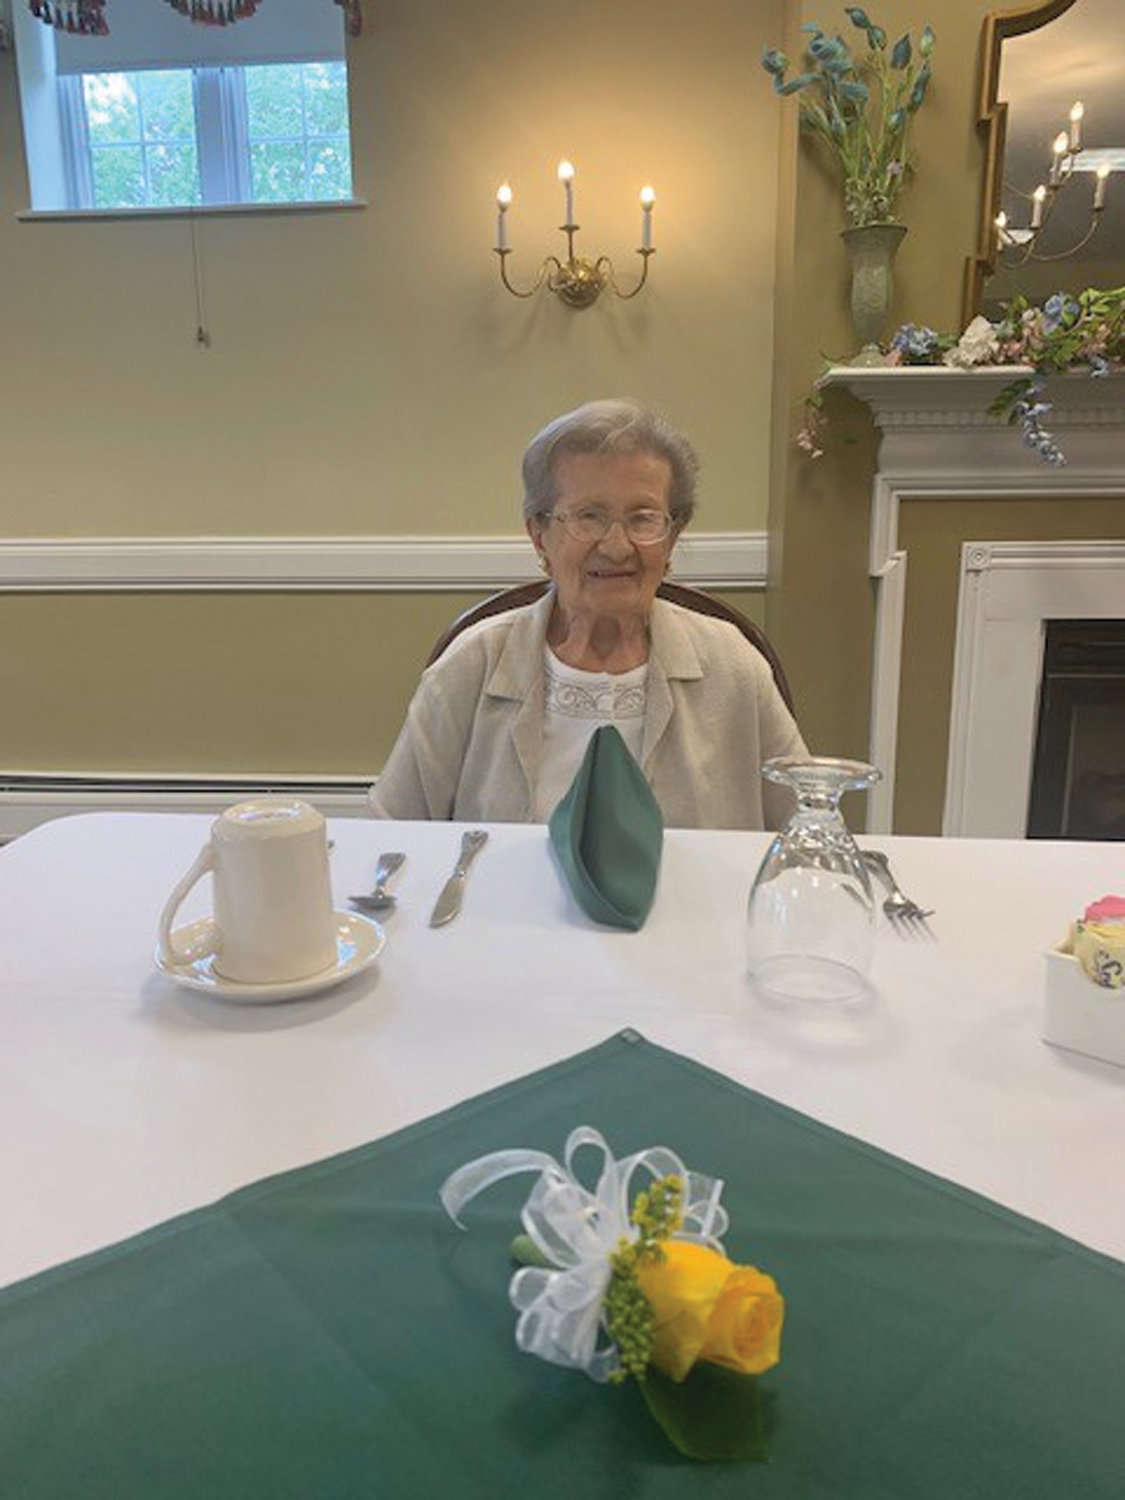 ALL SMILES: Ida Pezzullo, who will turn 100 in August, didn't retire until she was well into her 80s.